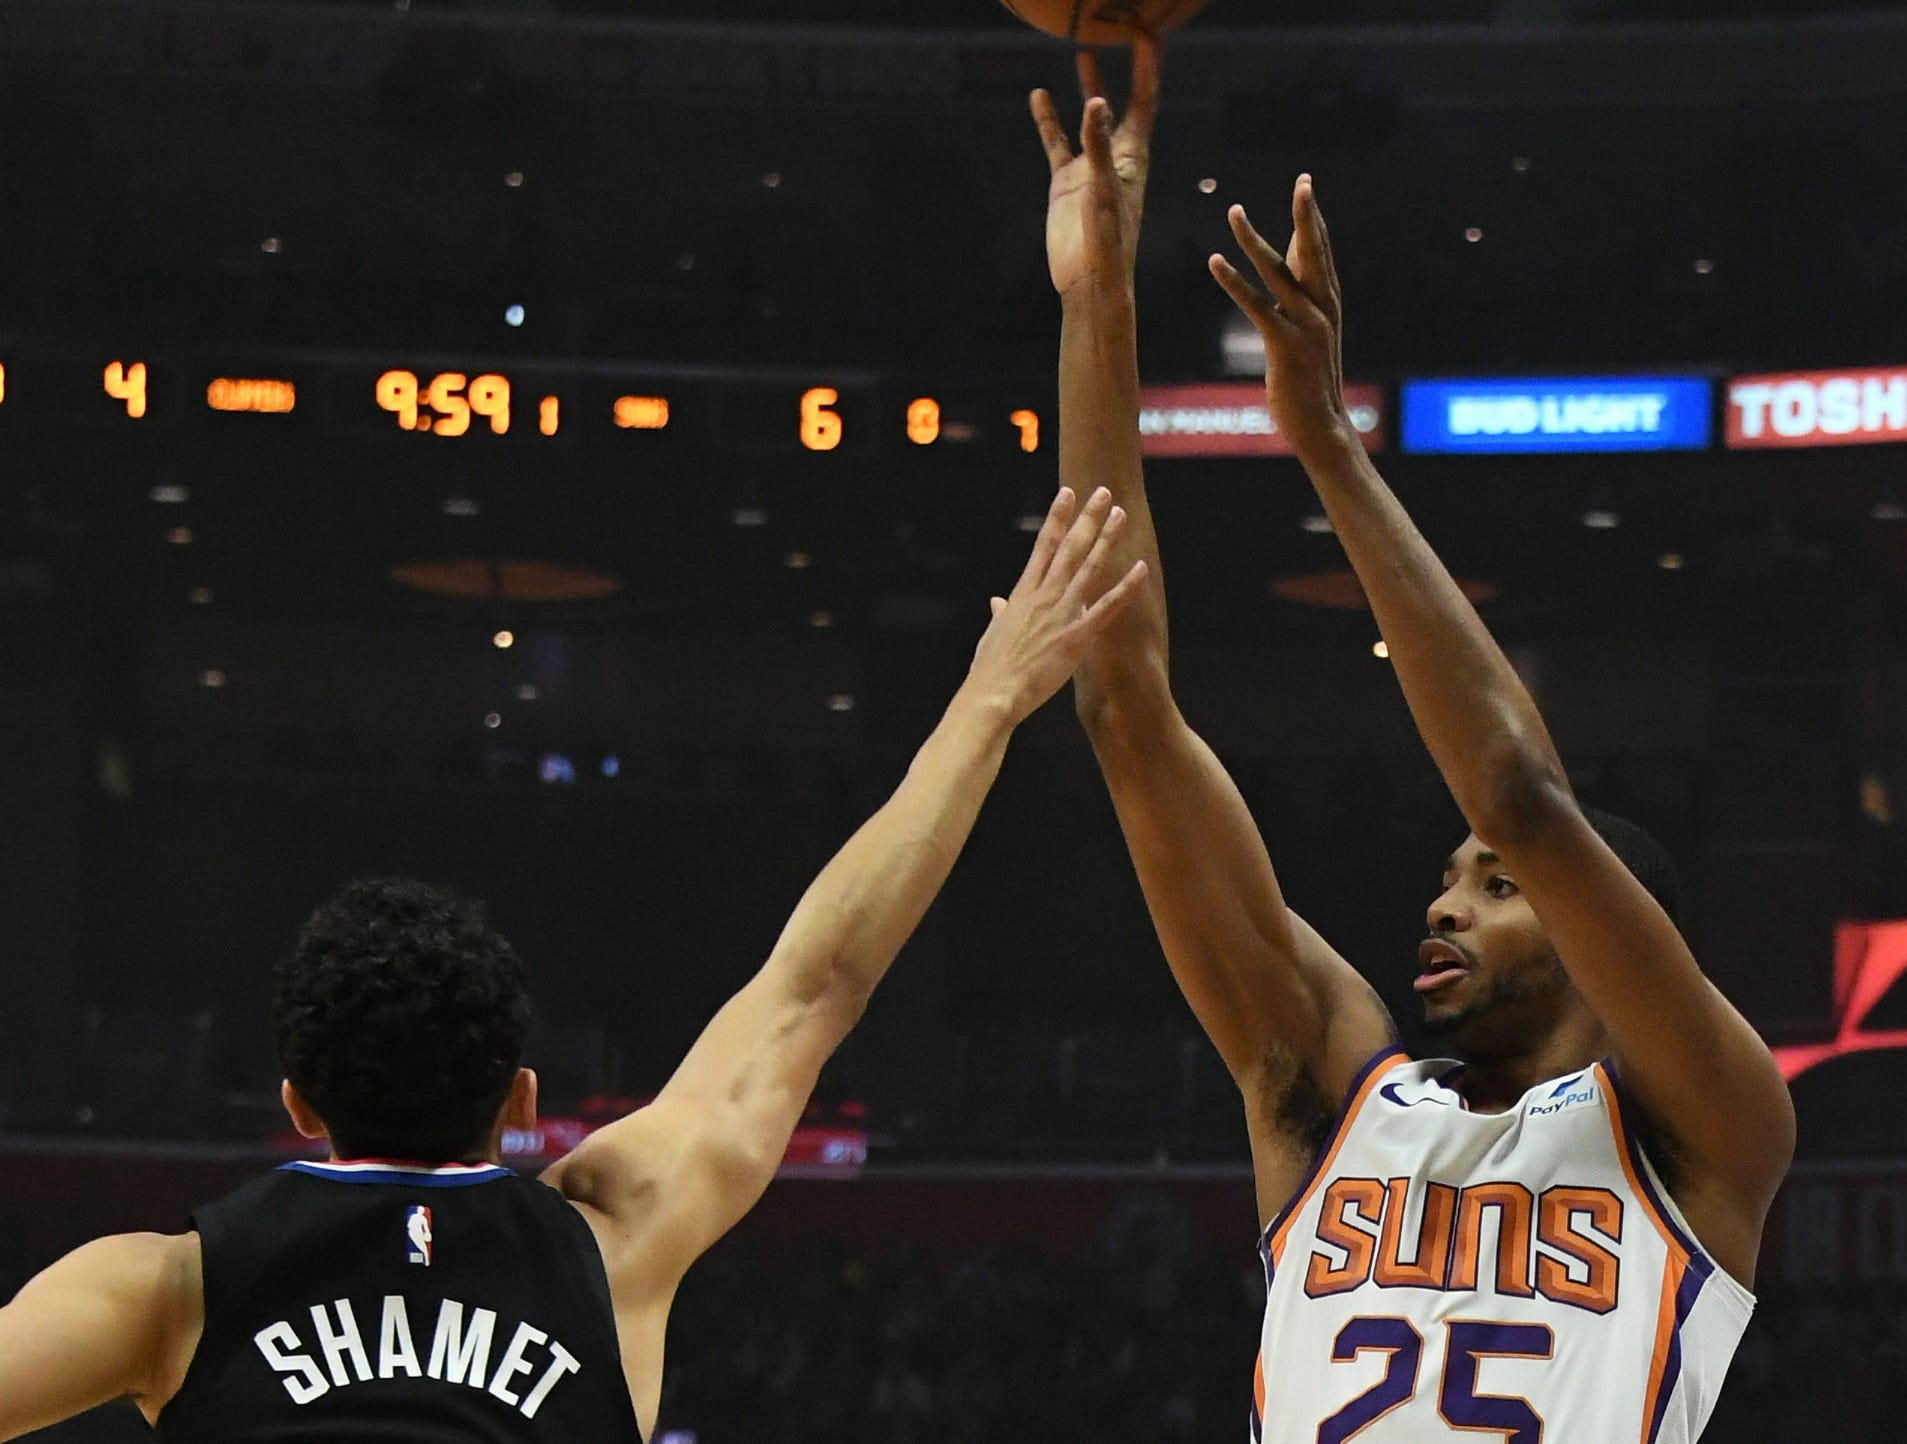 Feb 13, 2019; Los Angeles, CA, USA; Phoenix Suns forward Mikal Bridges (25) shoots over LA Clippers guard Landry Shamet (20) in the first half at Staples Center. Mandatory Credit: Richard Mackson-USA TODAY Sports